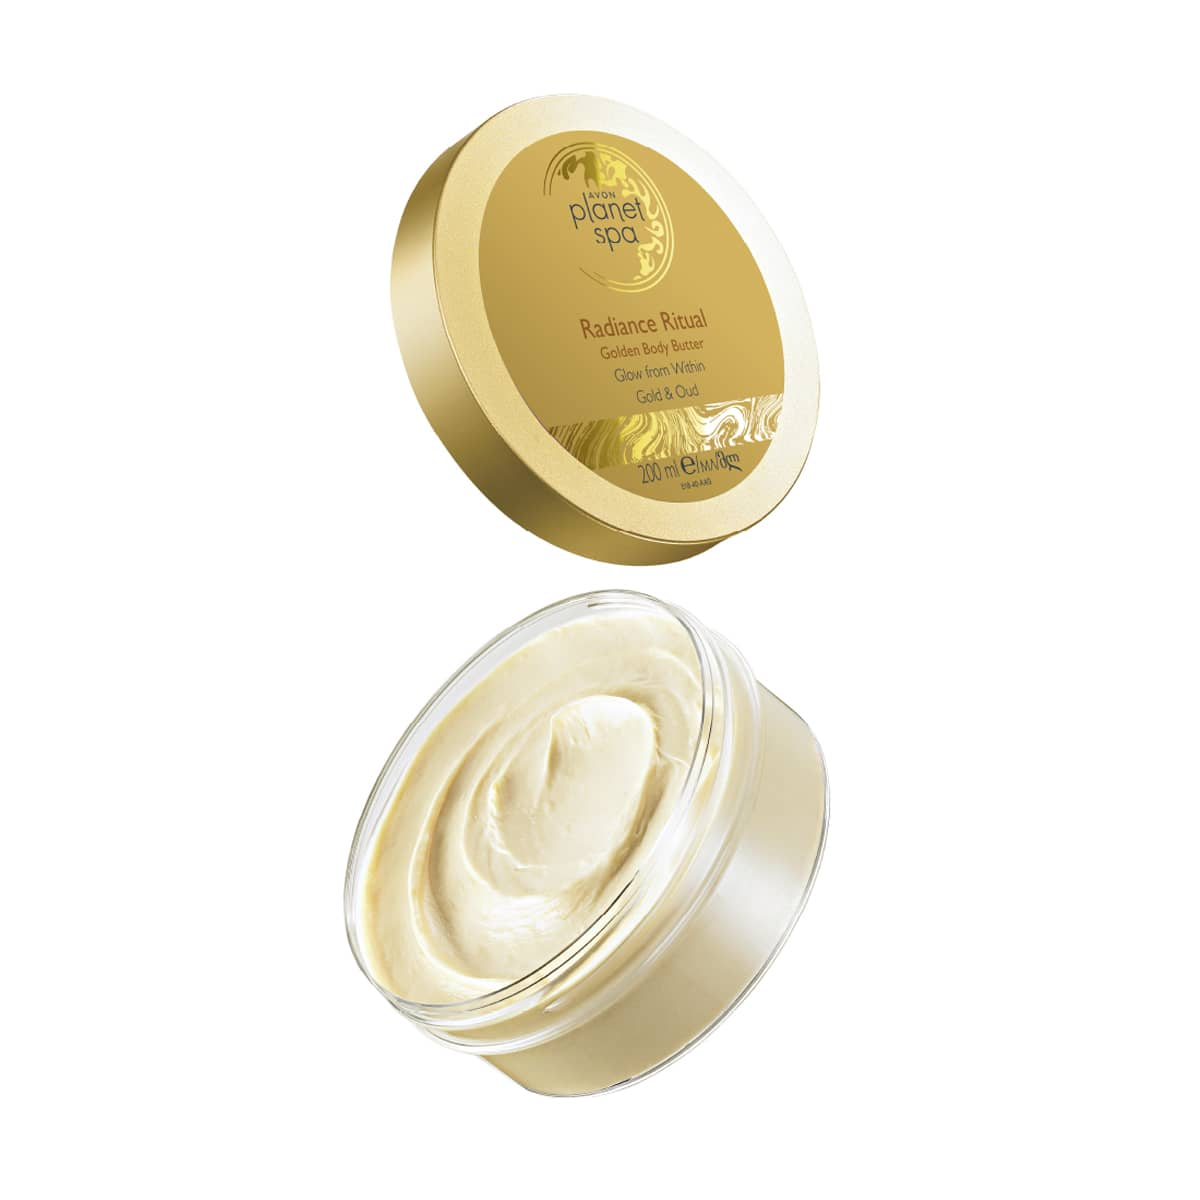 Planet Spa Radiance Ritual Golden Body Butter 1380769 200ml